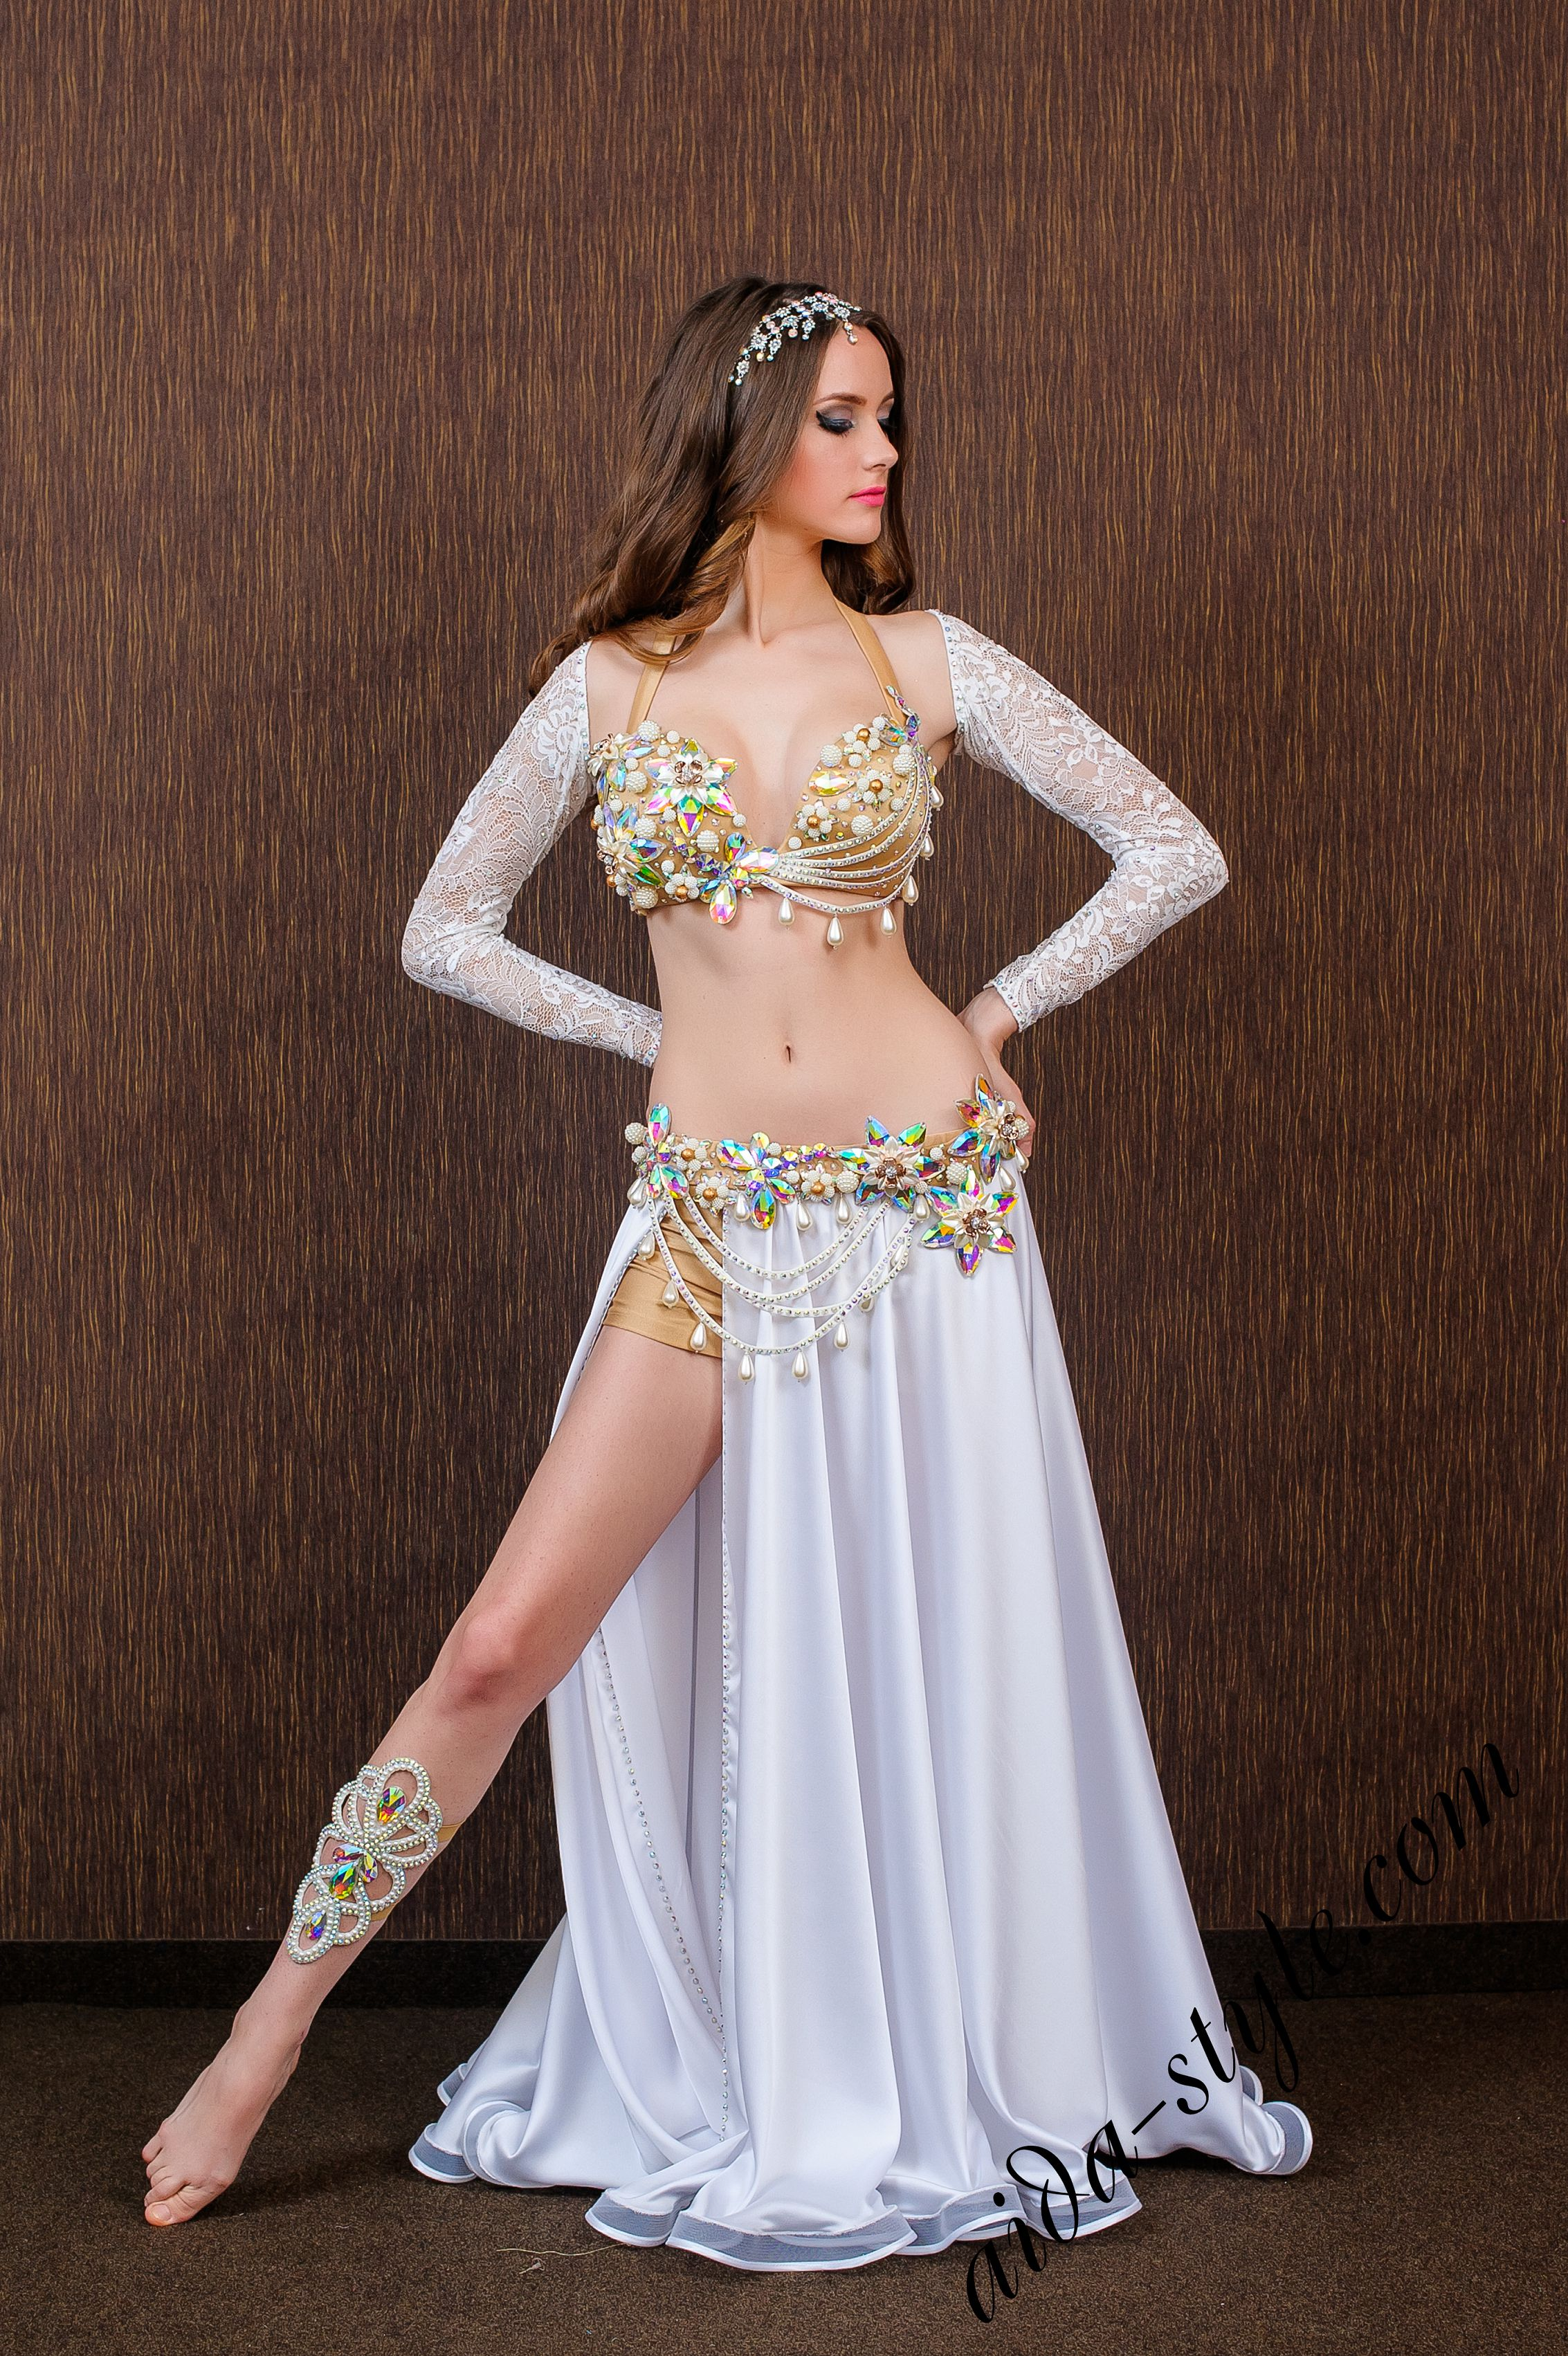 professional belly dance costume olga aida (43) – Aida Style